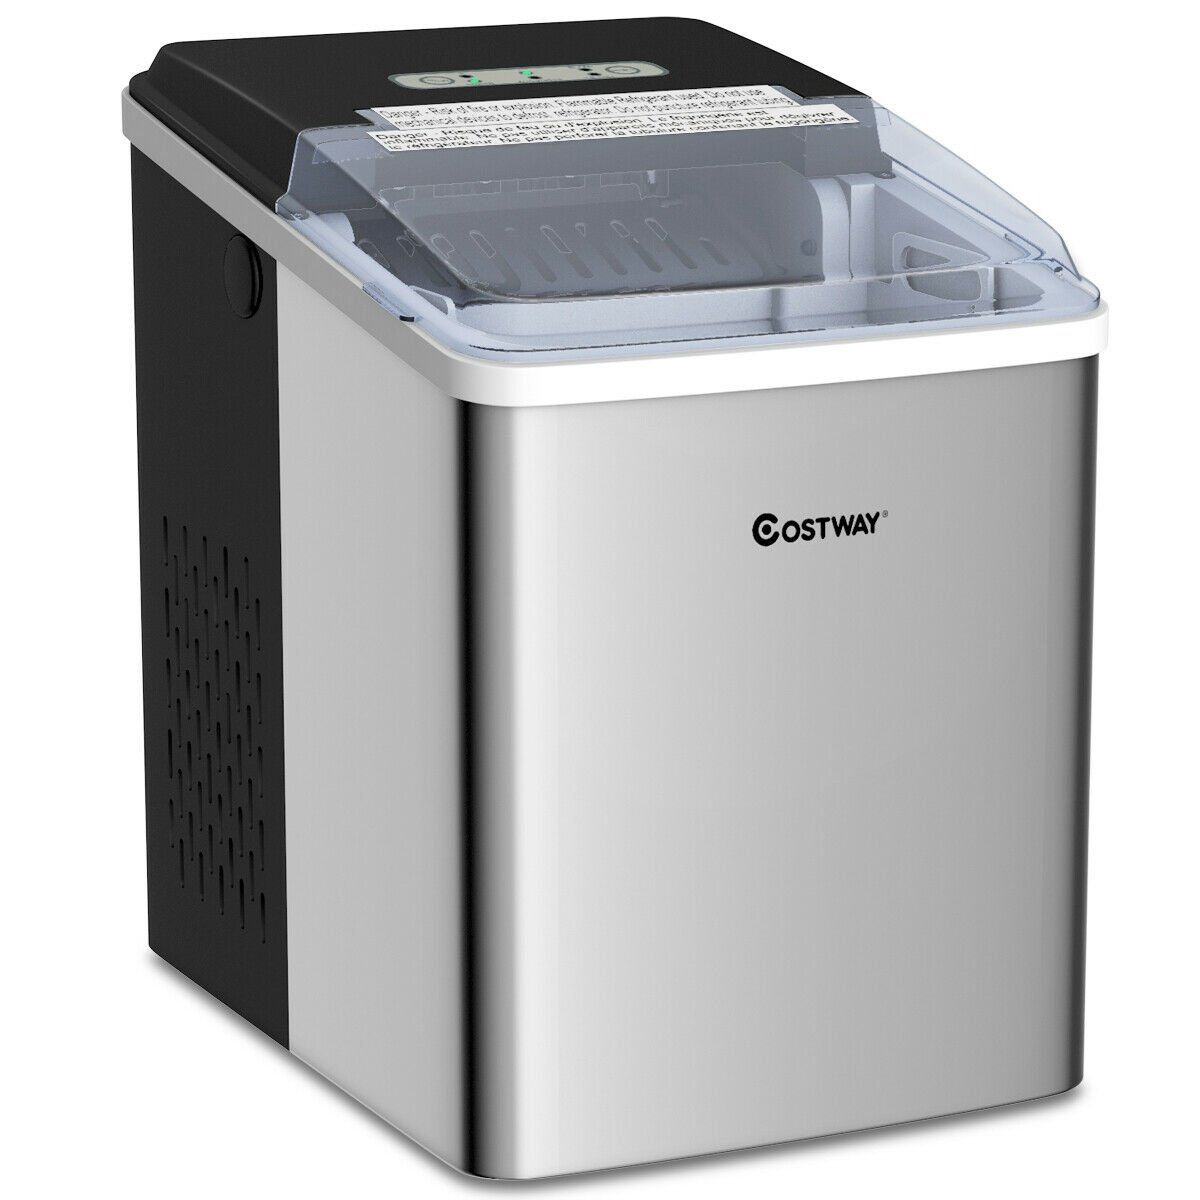 26 Lbs 24 H Self Clean Stainless Steel Ice Maker In 2020